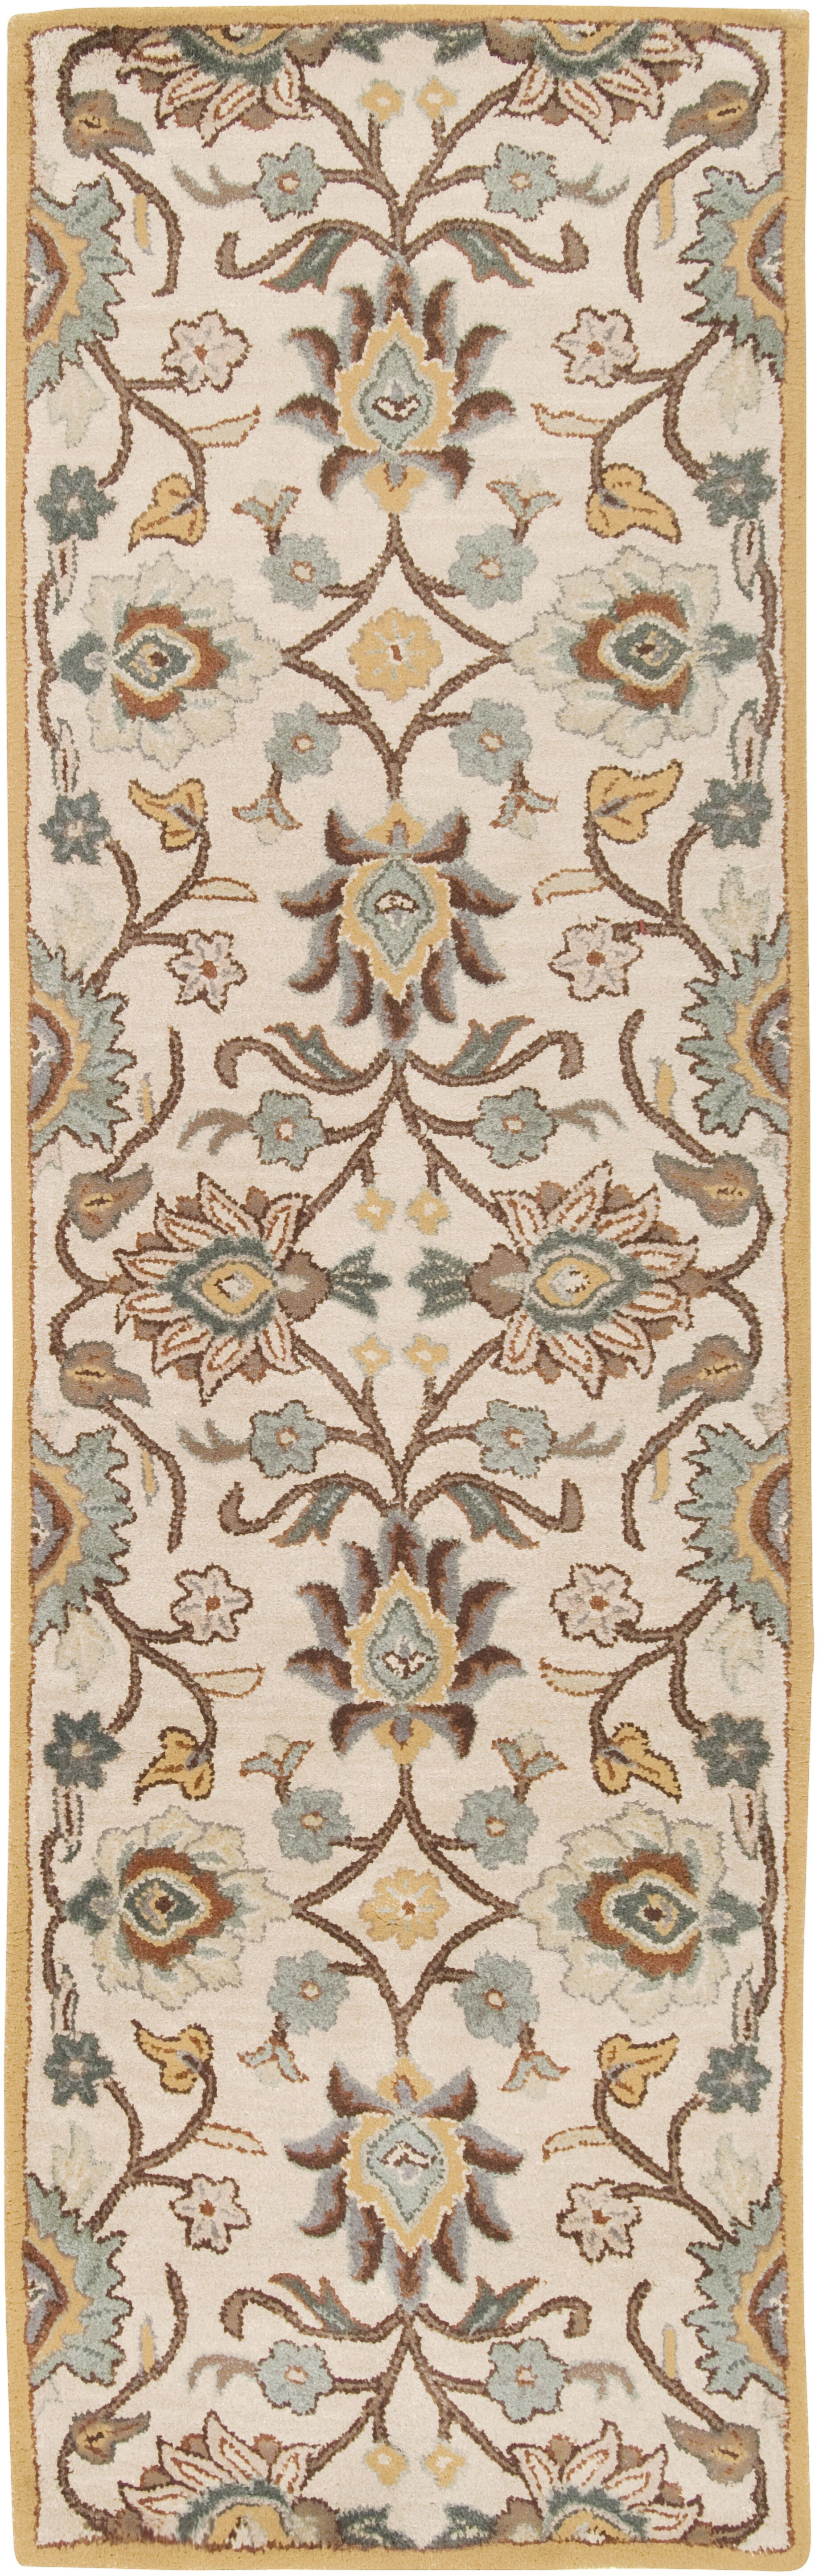 Phoebe Parchment & Teal Rug Rug Size: Runner 3' x 12'